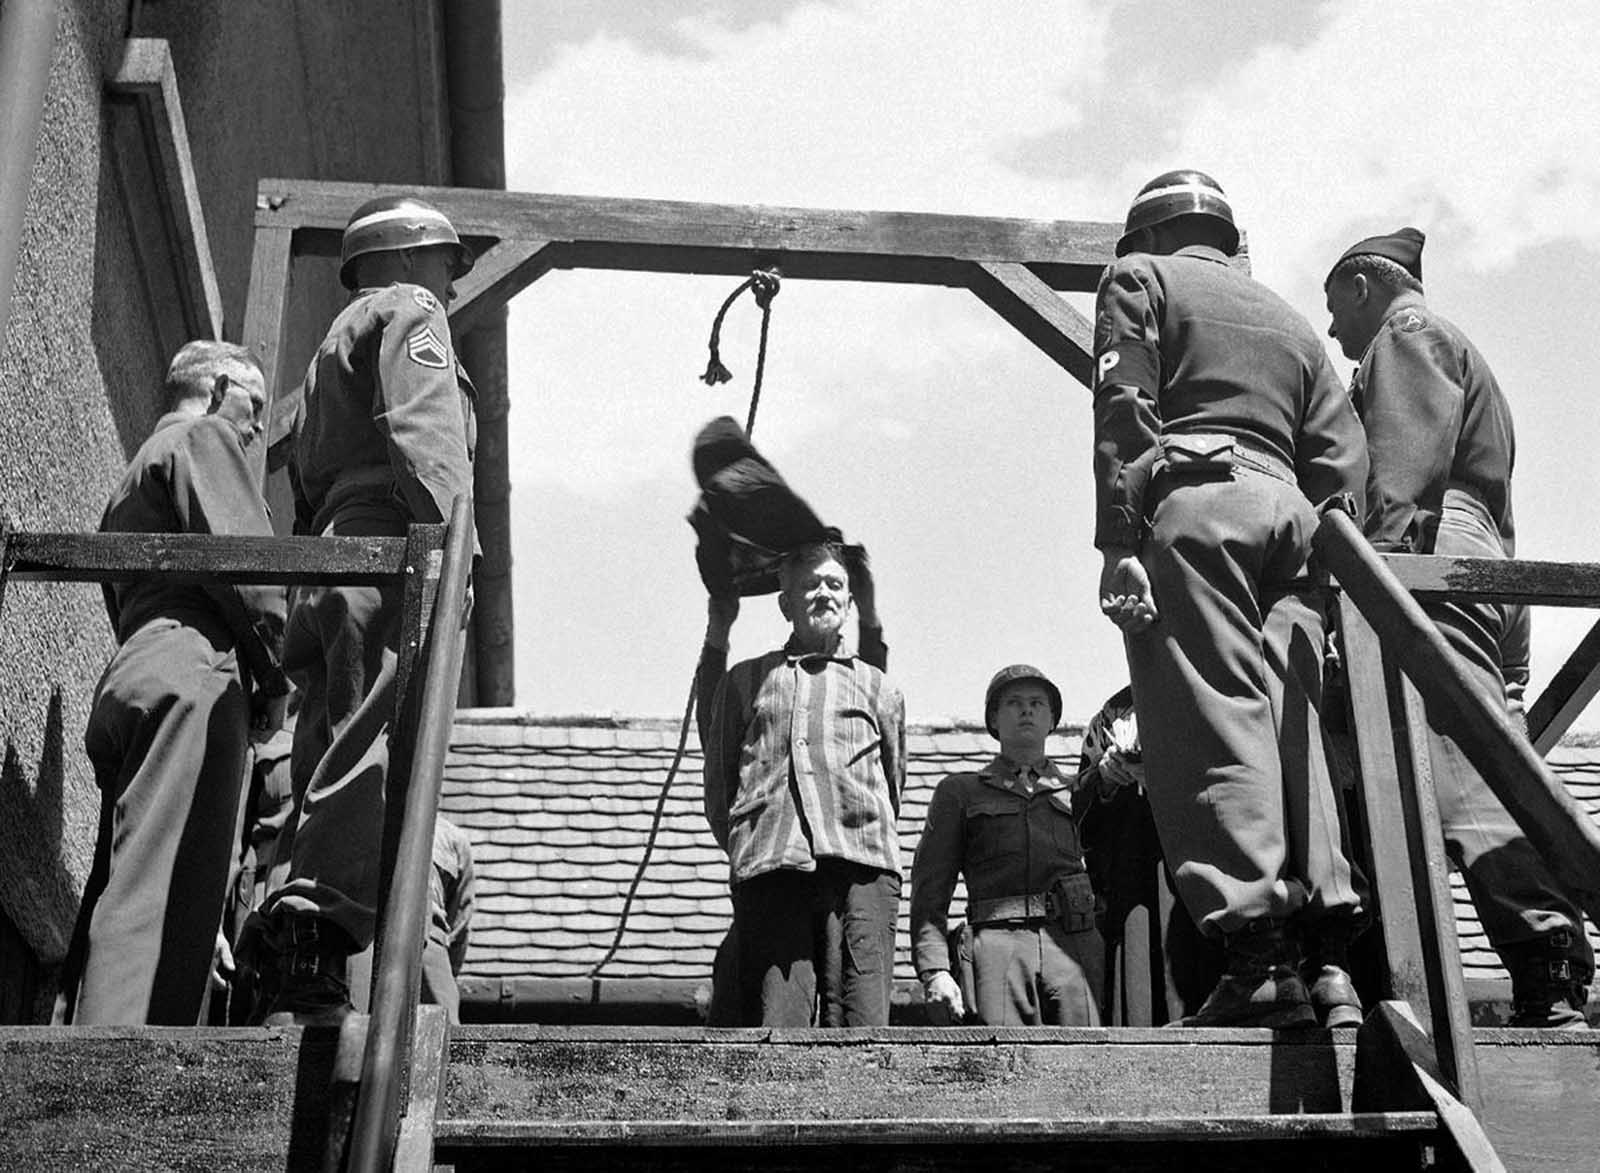 U.S. military authorities prepare to hang Dr. Klaus Karl Schilling, 74, at Landsberg, Germany, on May 28, 1946. In a Dachau war crimes trial he was convicted of using 1,200 concentration camp prisoners for malaria experimentation. Thirty died directly from the inoculations and 300 to 400 died later from complications of the disease. His experiments, all with unwilling subjects, began in 1942.